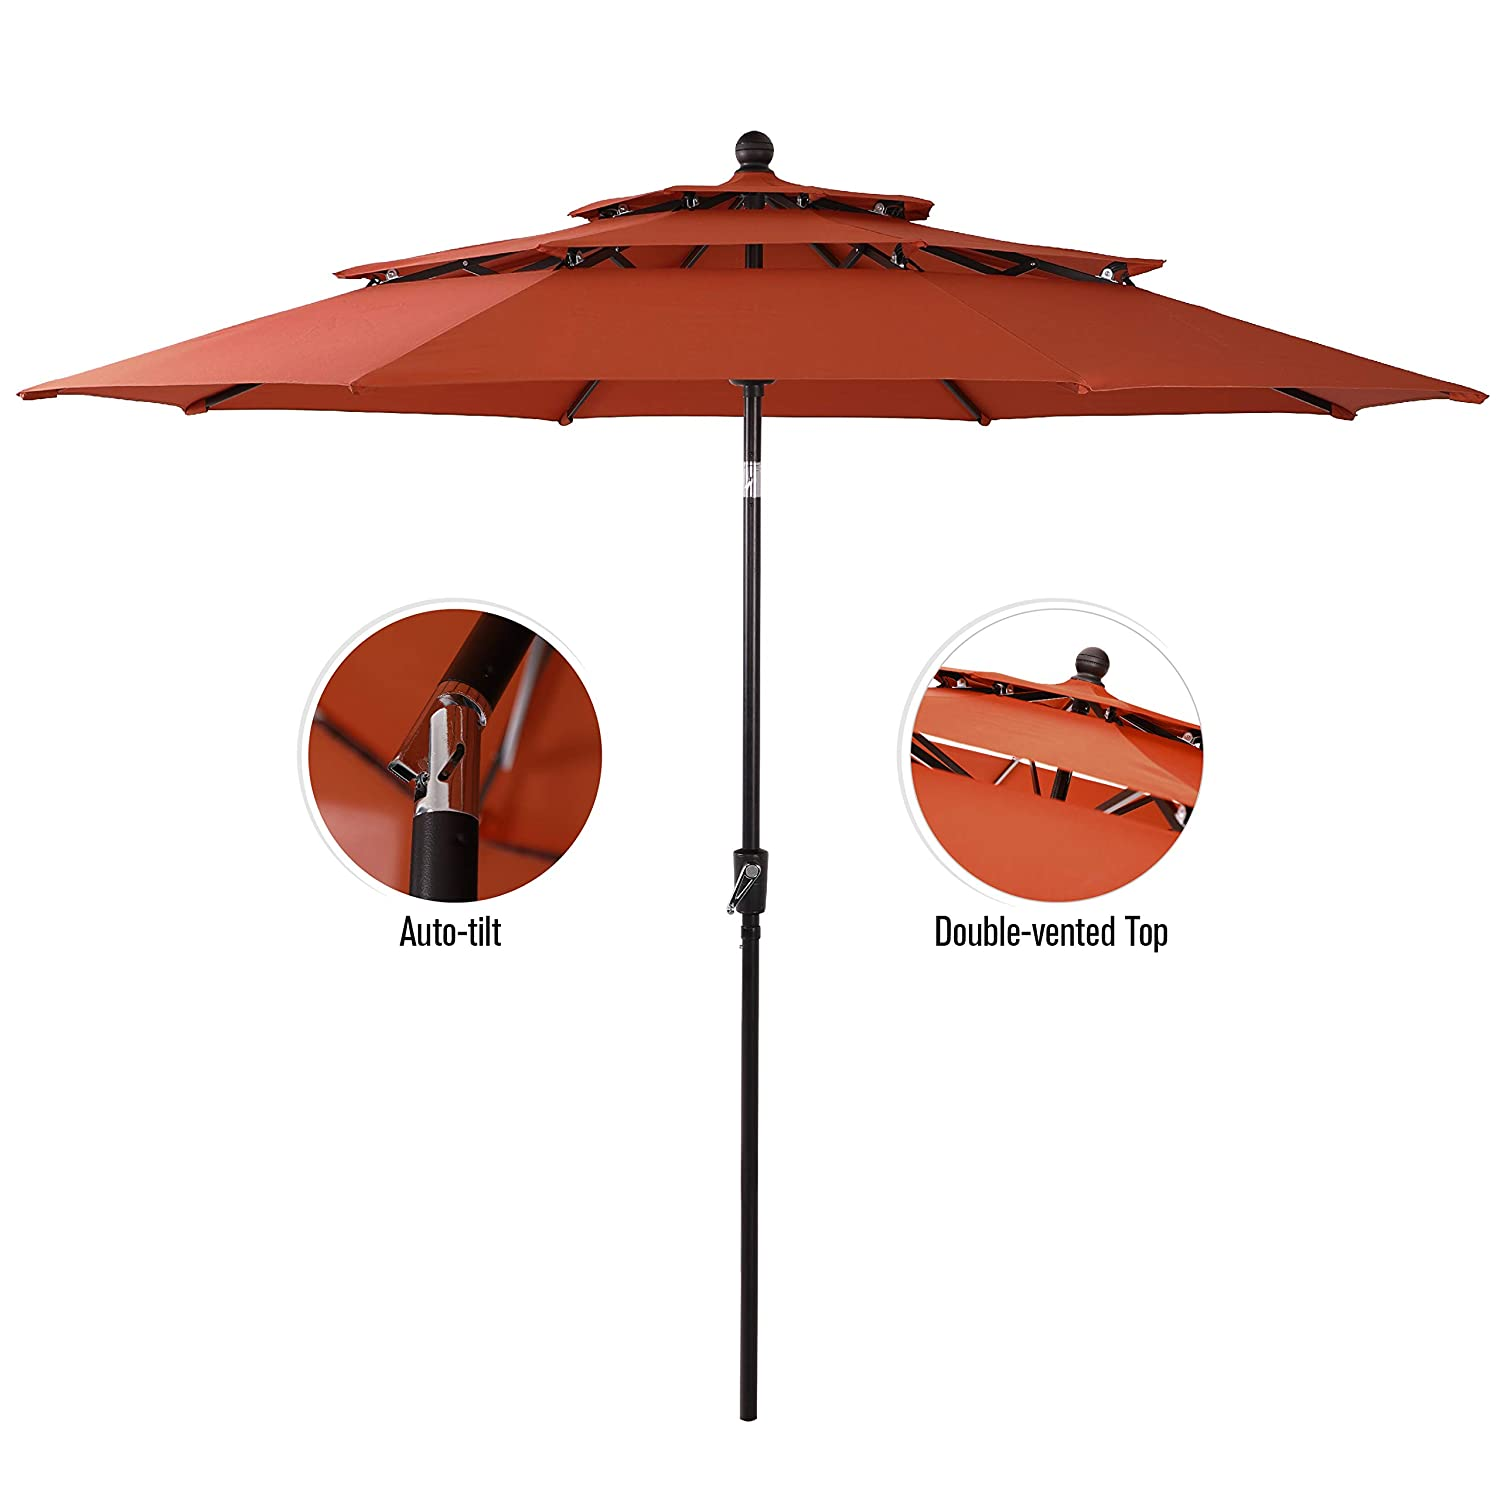 PHI VILLA 10ft 3 Tier Auto-tilt Patio Umbrella Outdoor Double Vented Umbrella, Orange Red